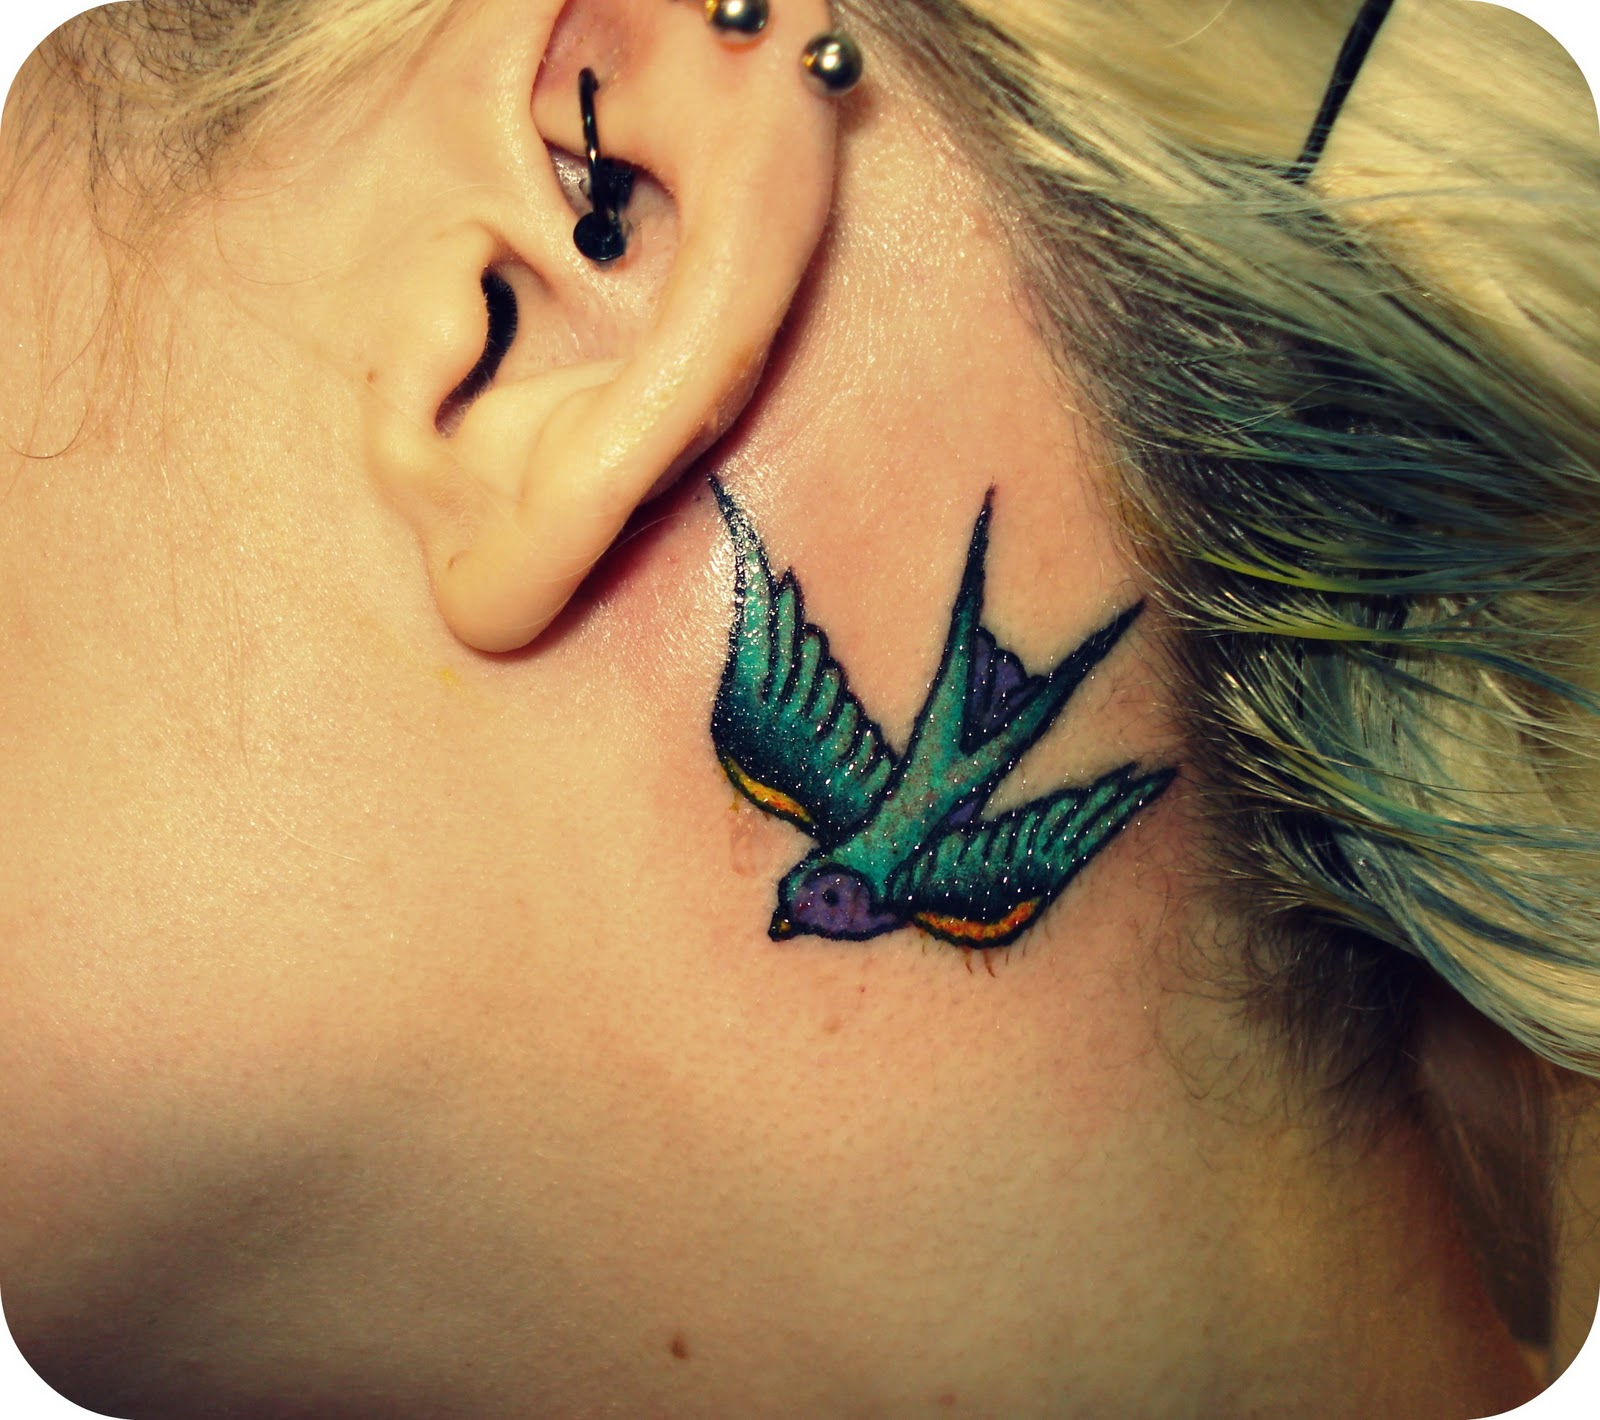 Dove Tattoos Behind The Ear: Blue Ink Flying Bird Back Ear Tattoo